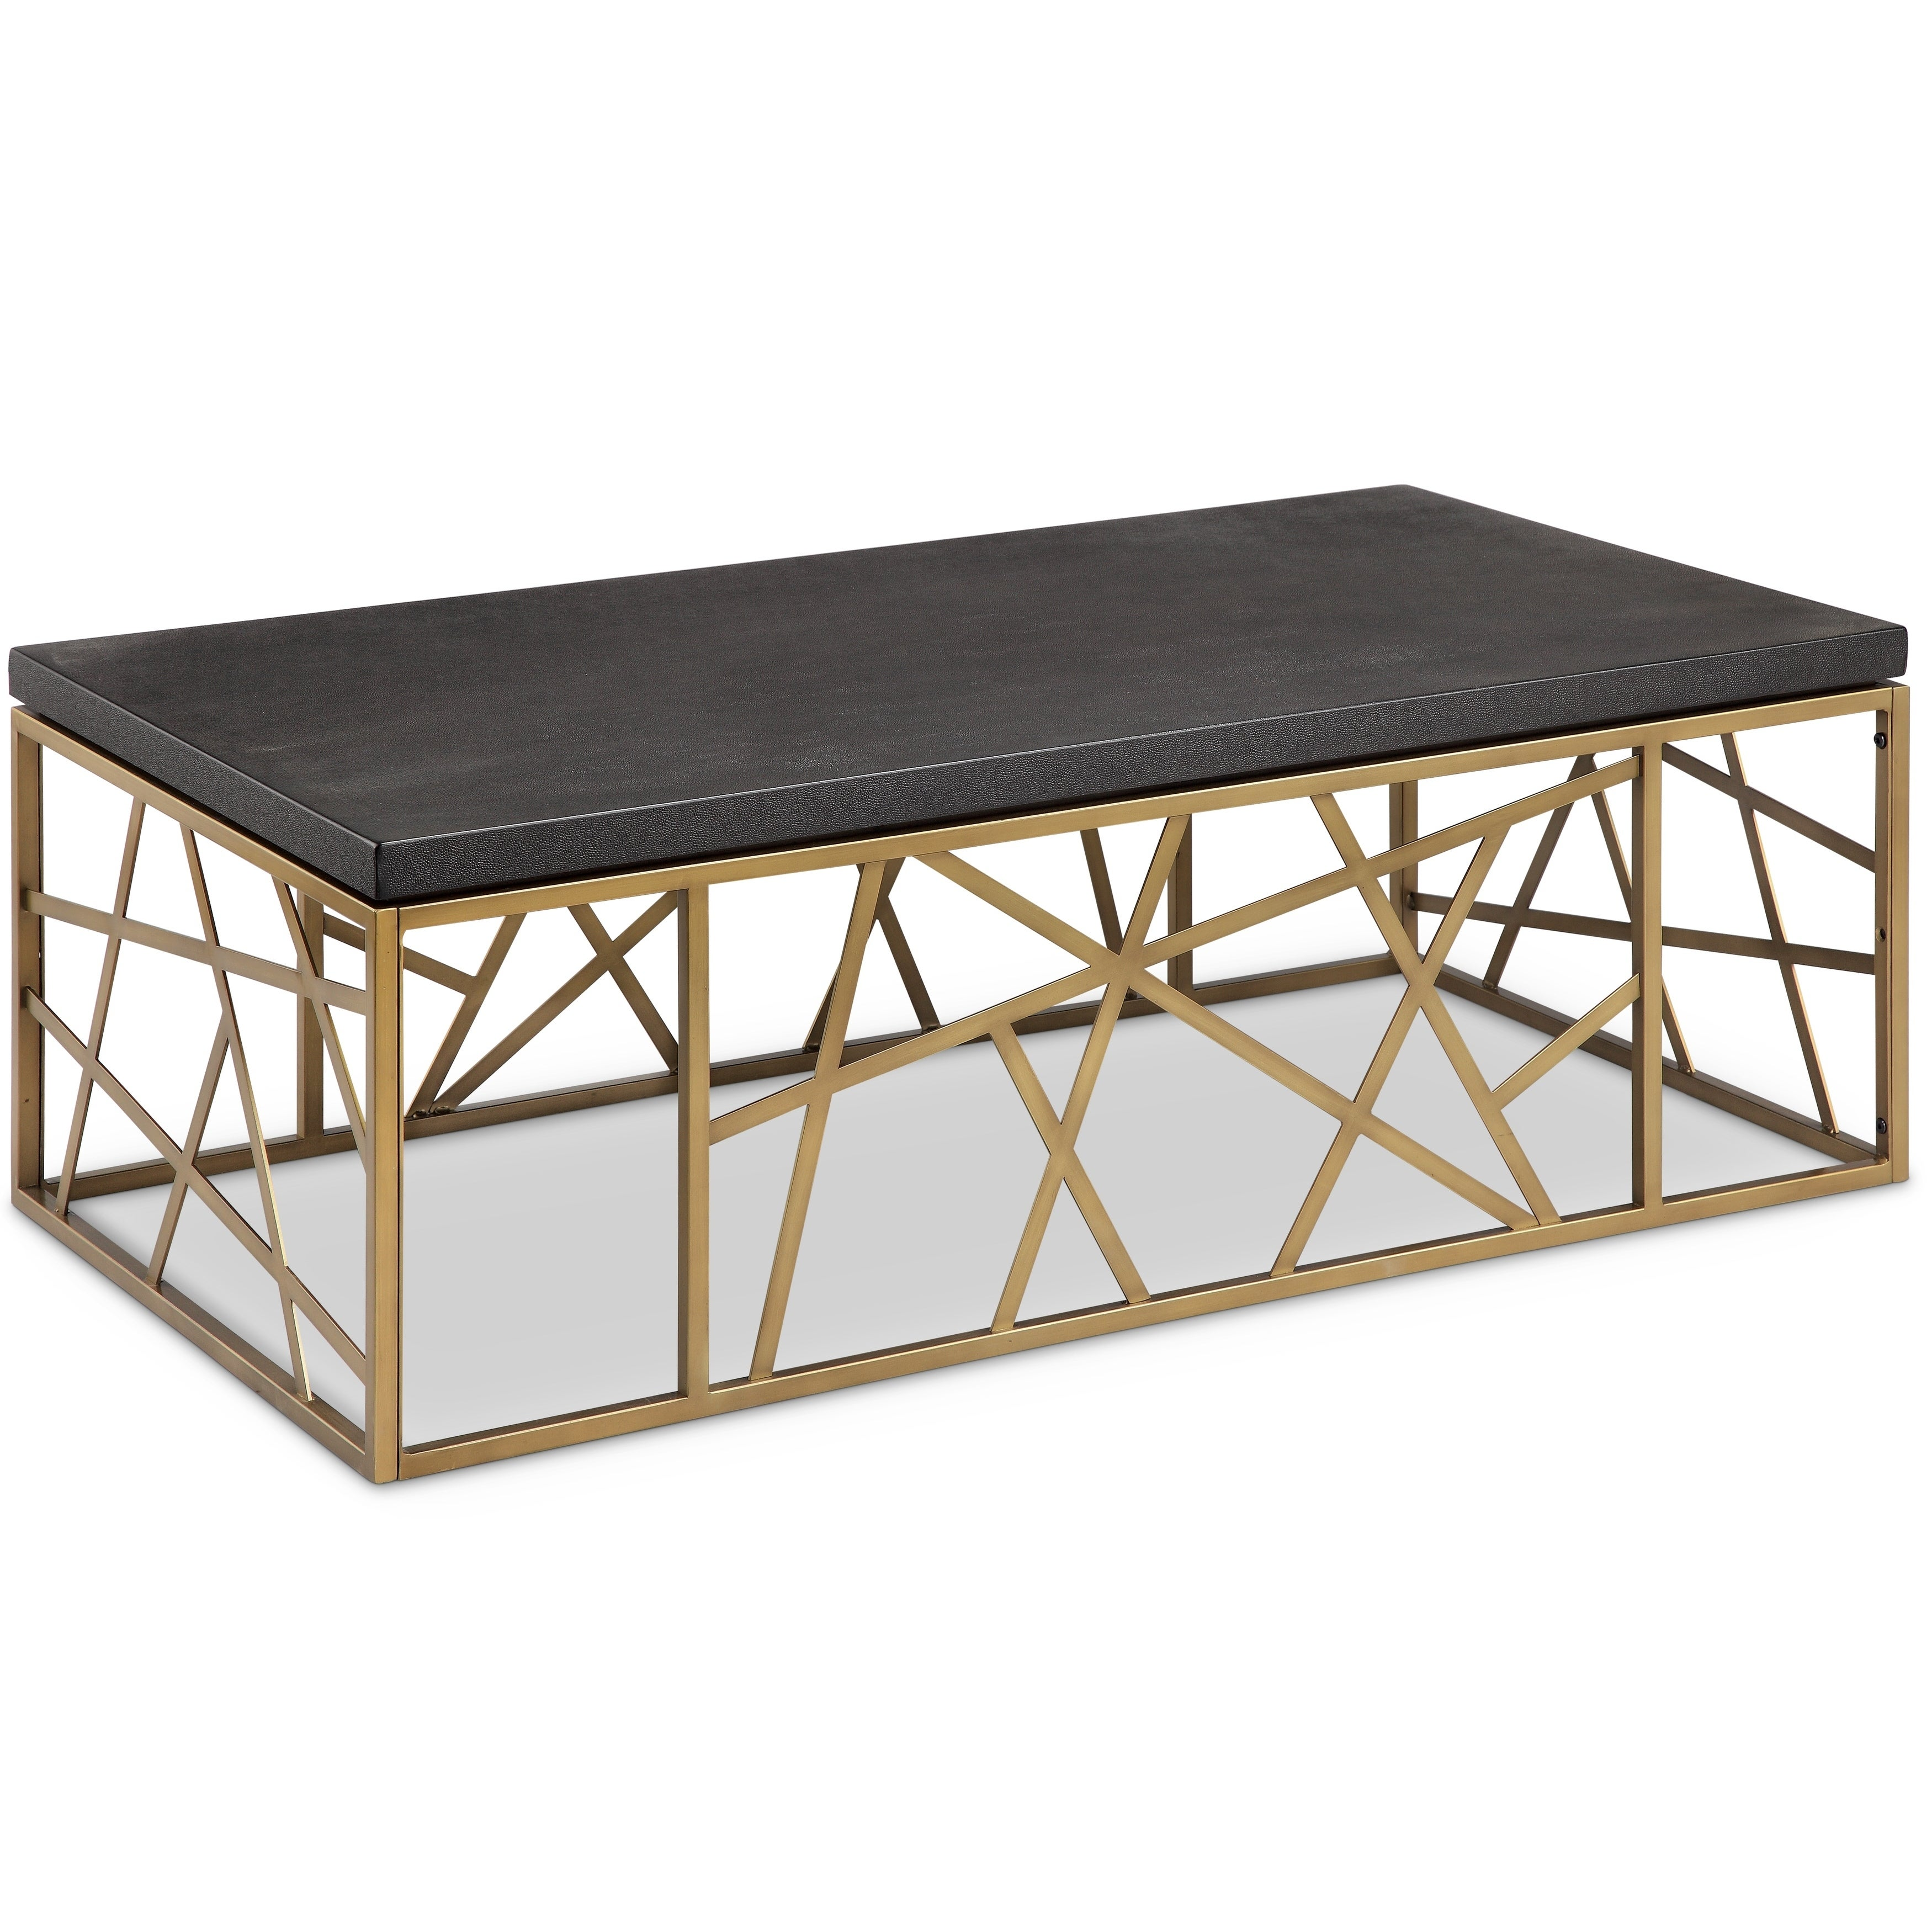 Sarapa Contemporary Black Shagreen and Antique Gold Coffee Table